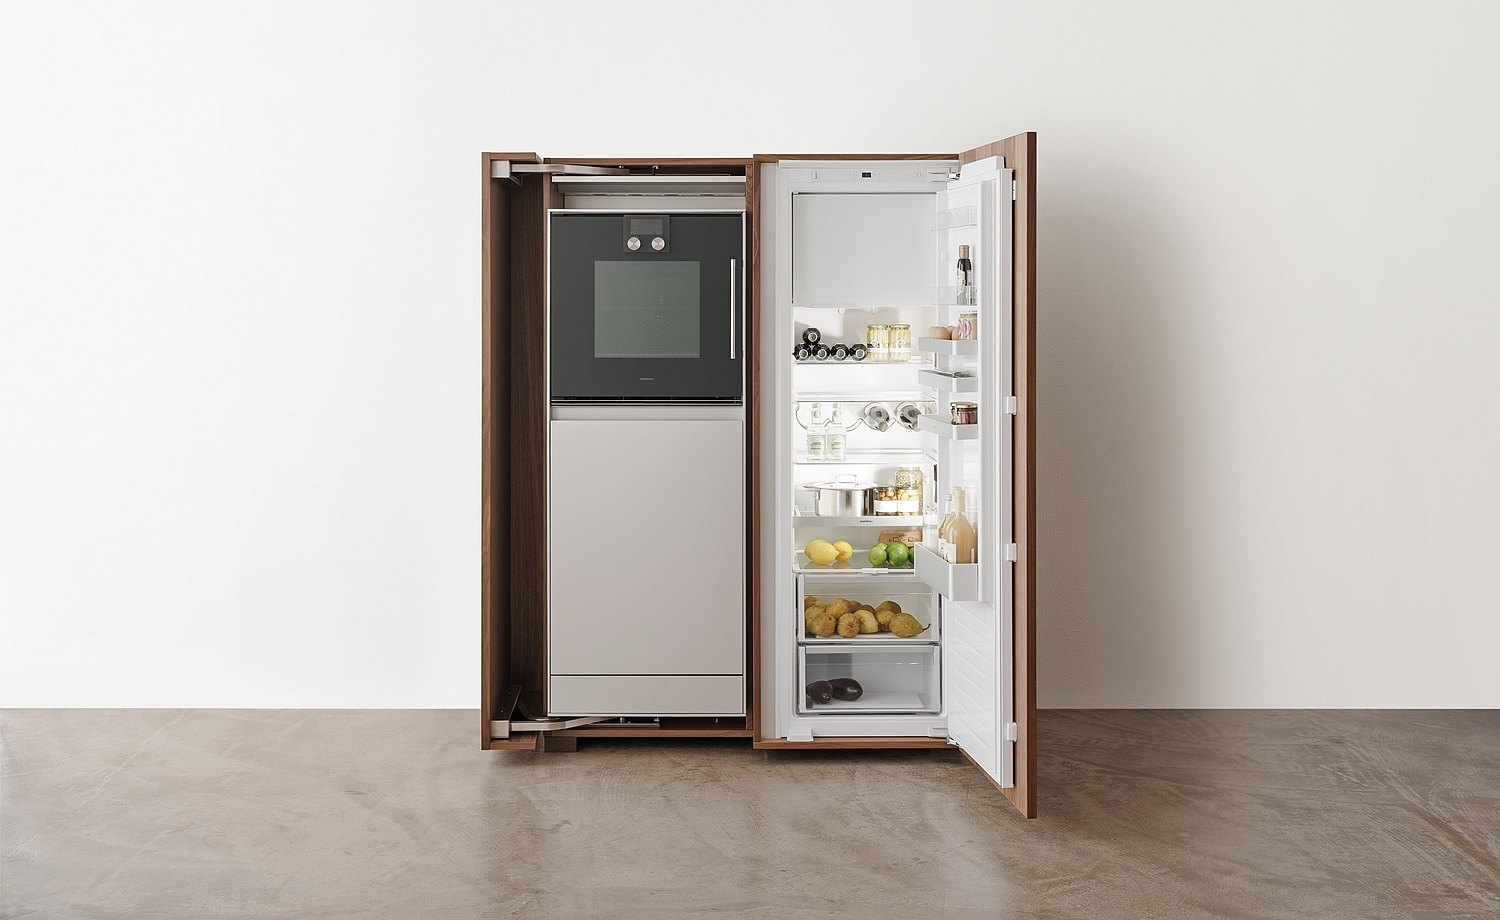 The equipment cabinet accommodates the refrigerator and stove perfectly